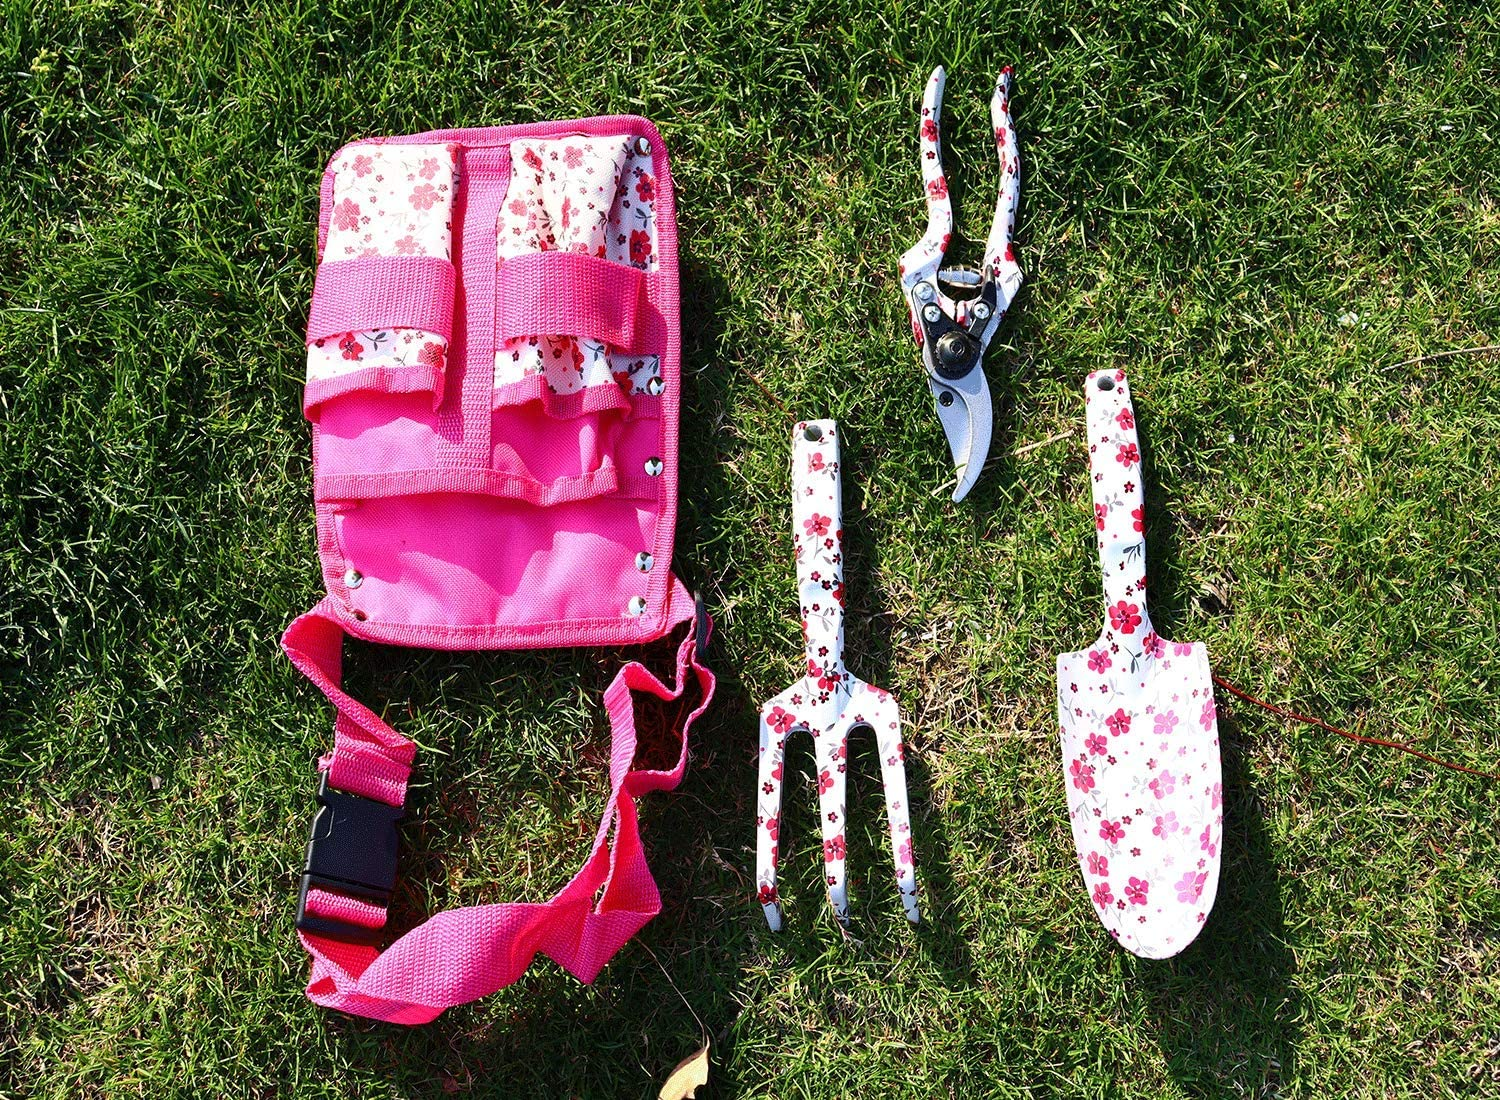 JYNselling 3 Pieces Garden Hand Tool Set, Gardening Kit Includes Trowel, Pruning Shears, Hand Rake with Belt Carrying Bag- Pink, Flower Print, Women Gift